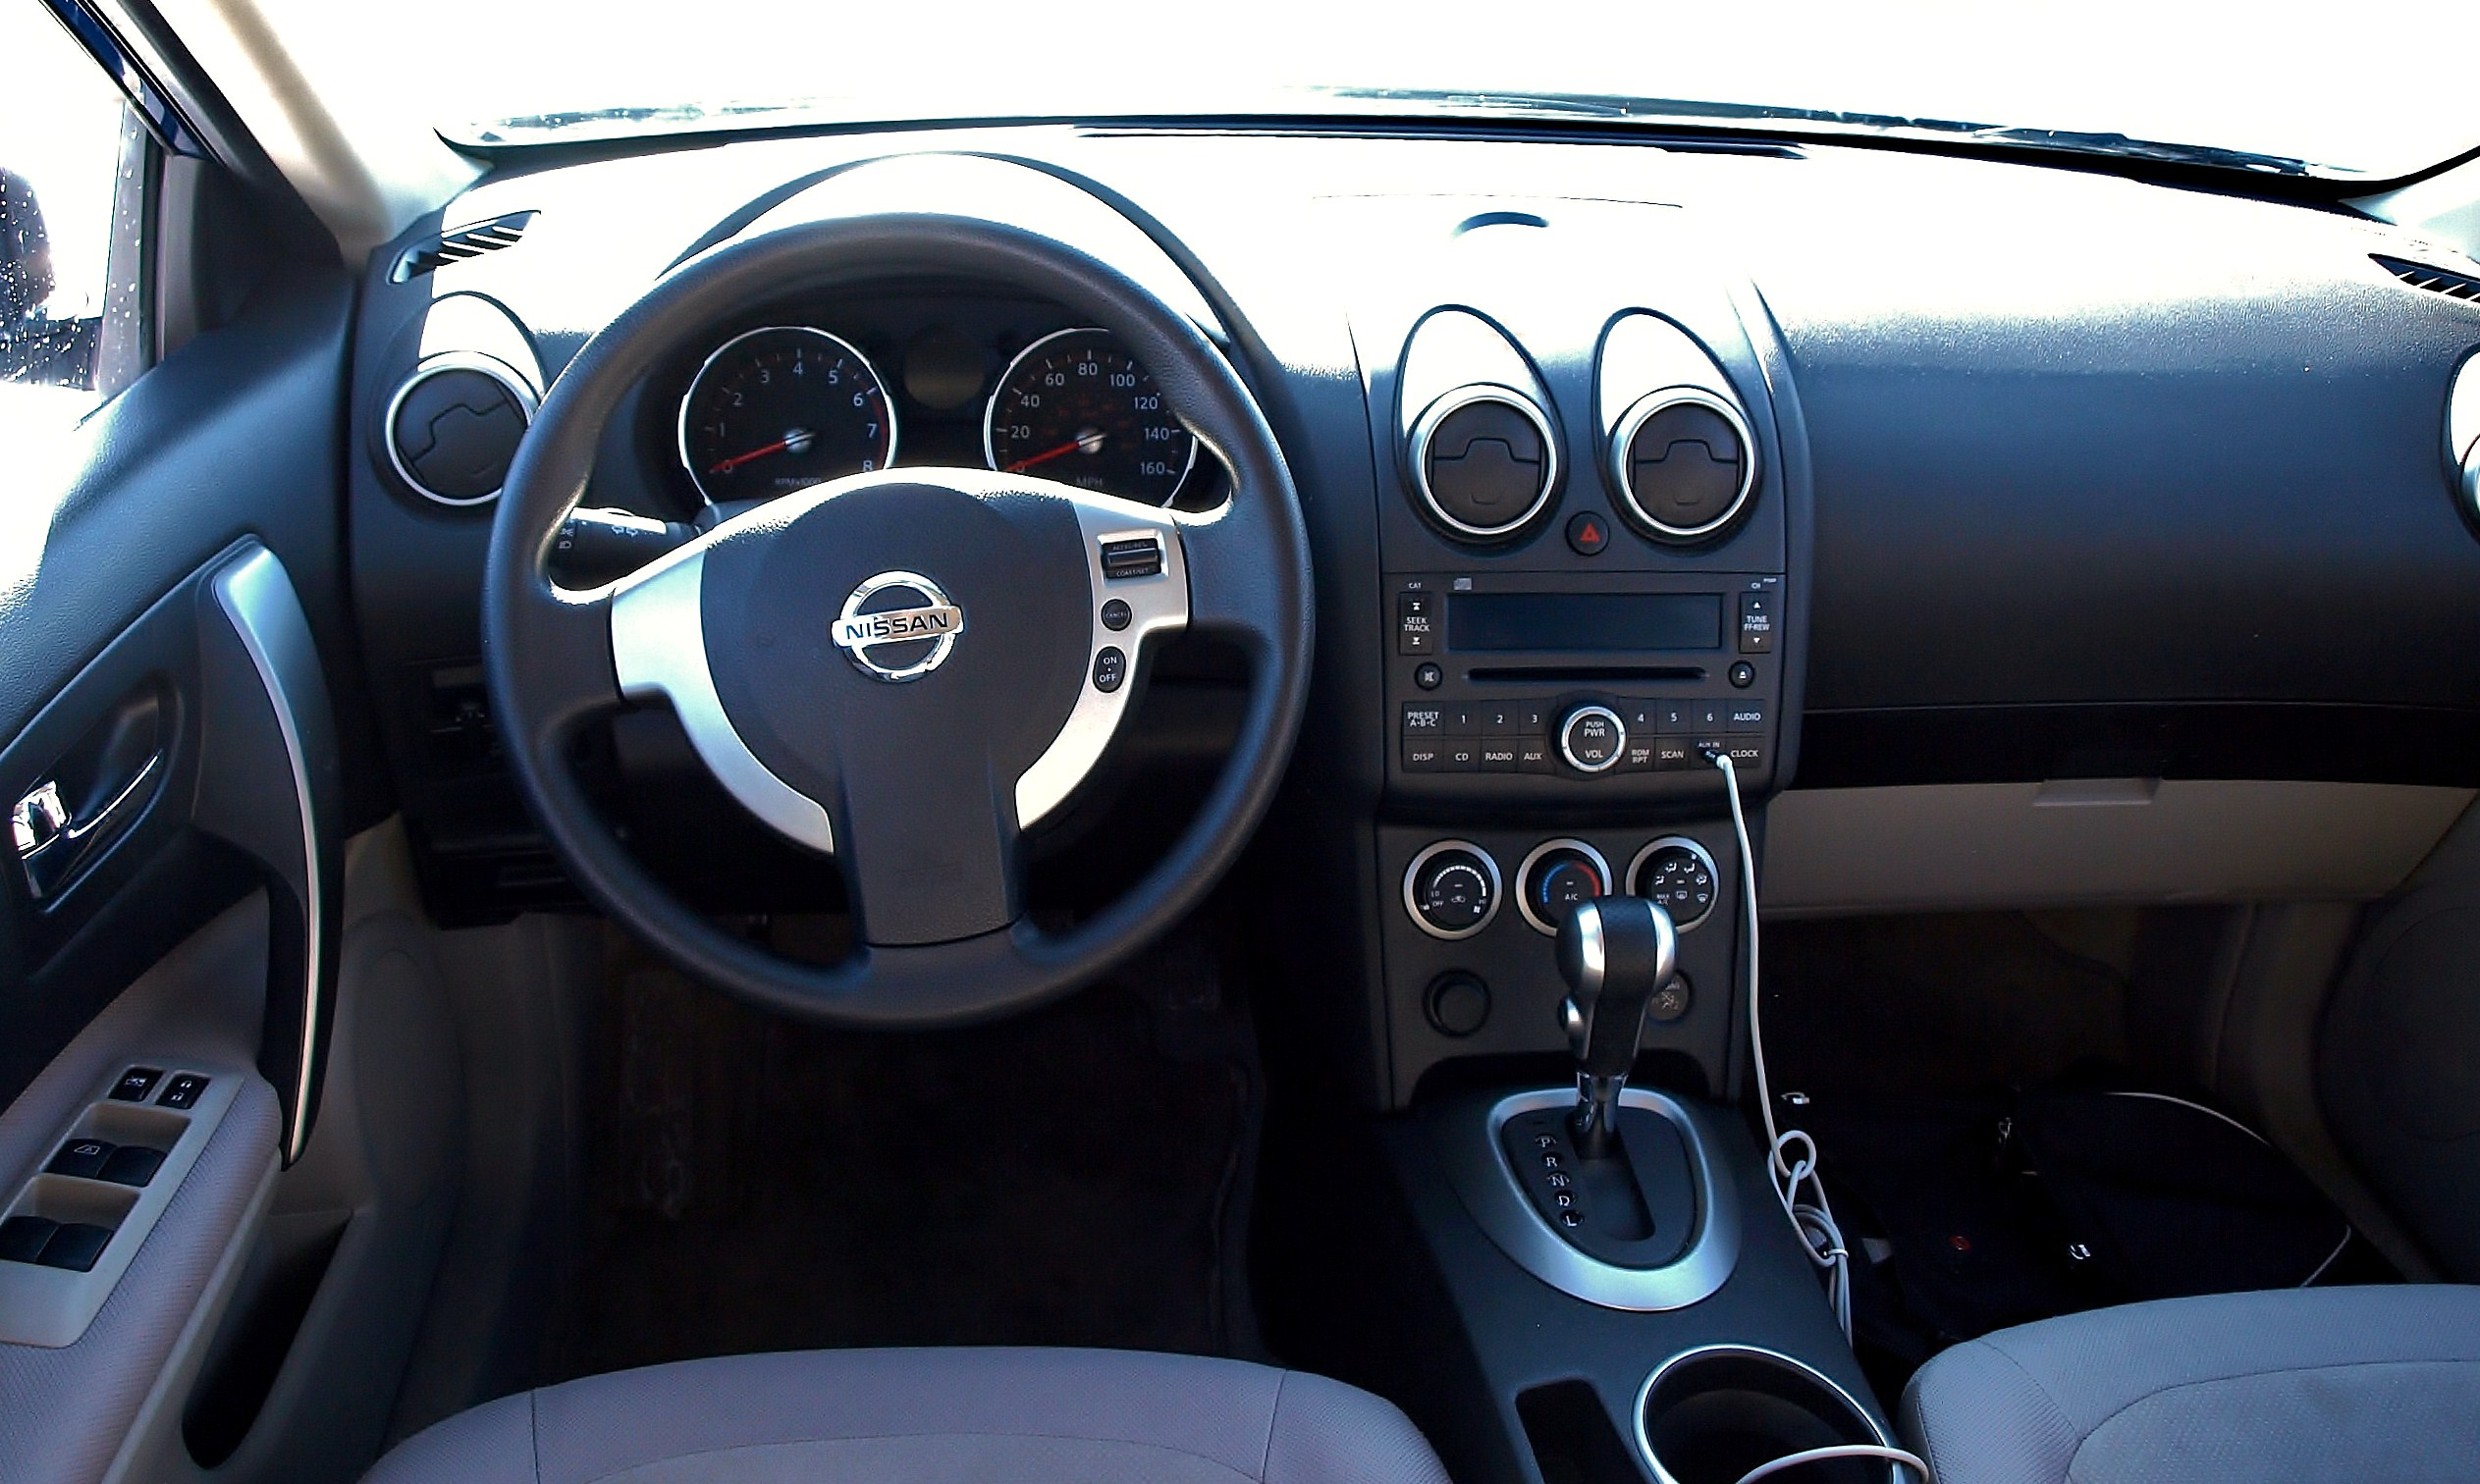 Carros Nissan Altima >> File:NISSAN ROGUE interior.jpg - Wikimedia Commons